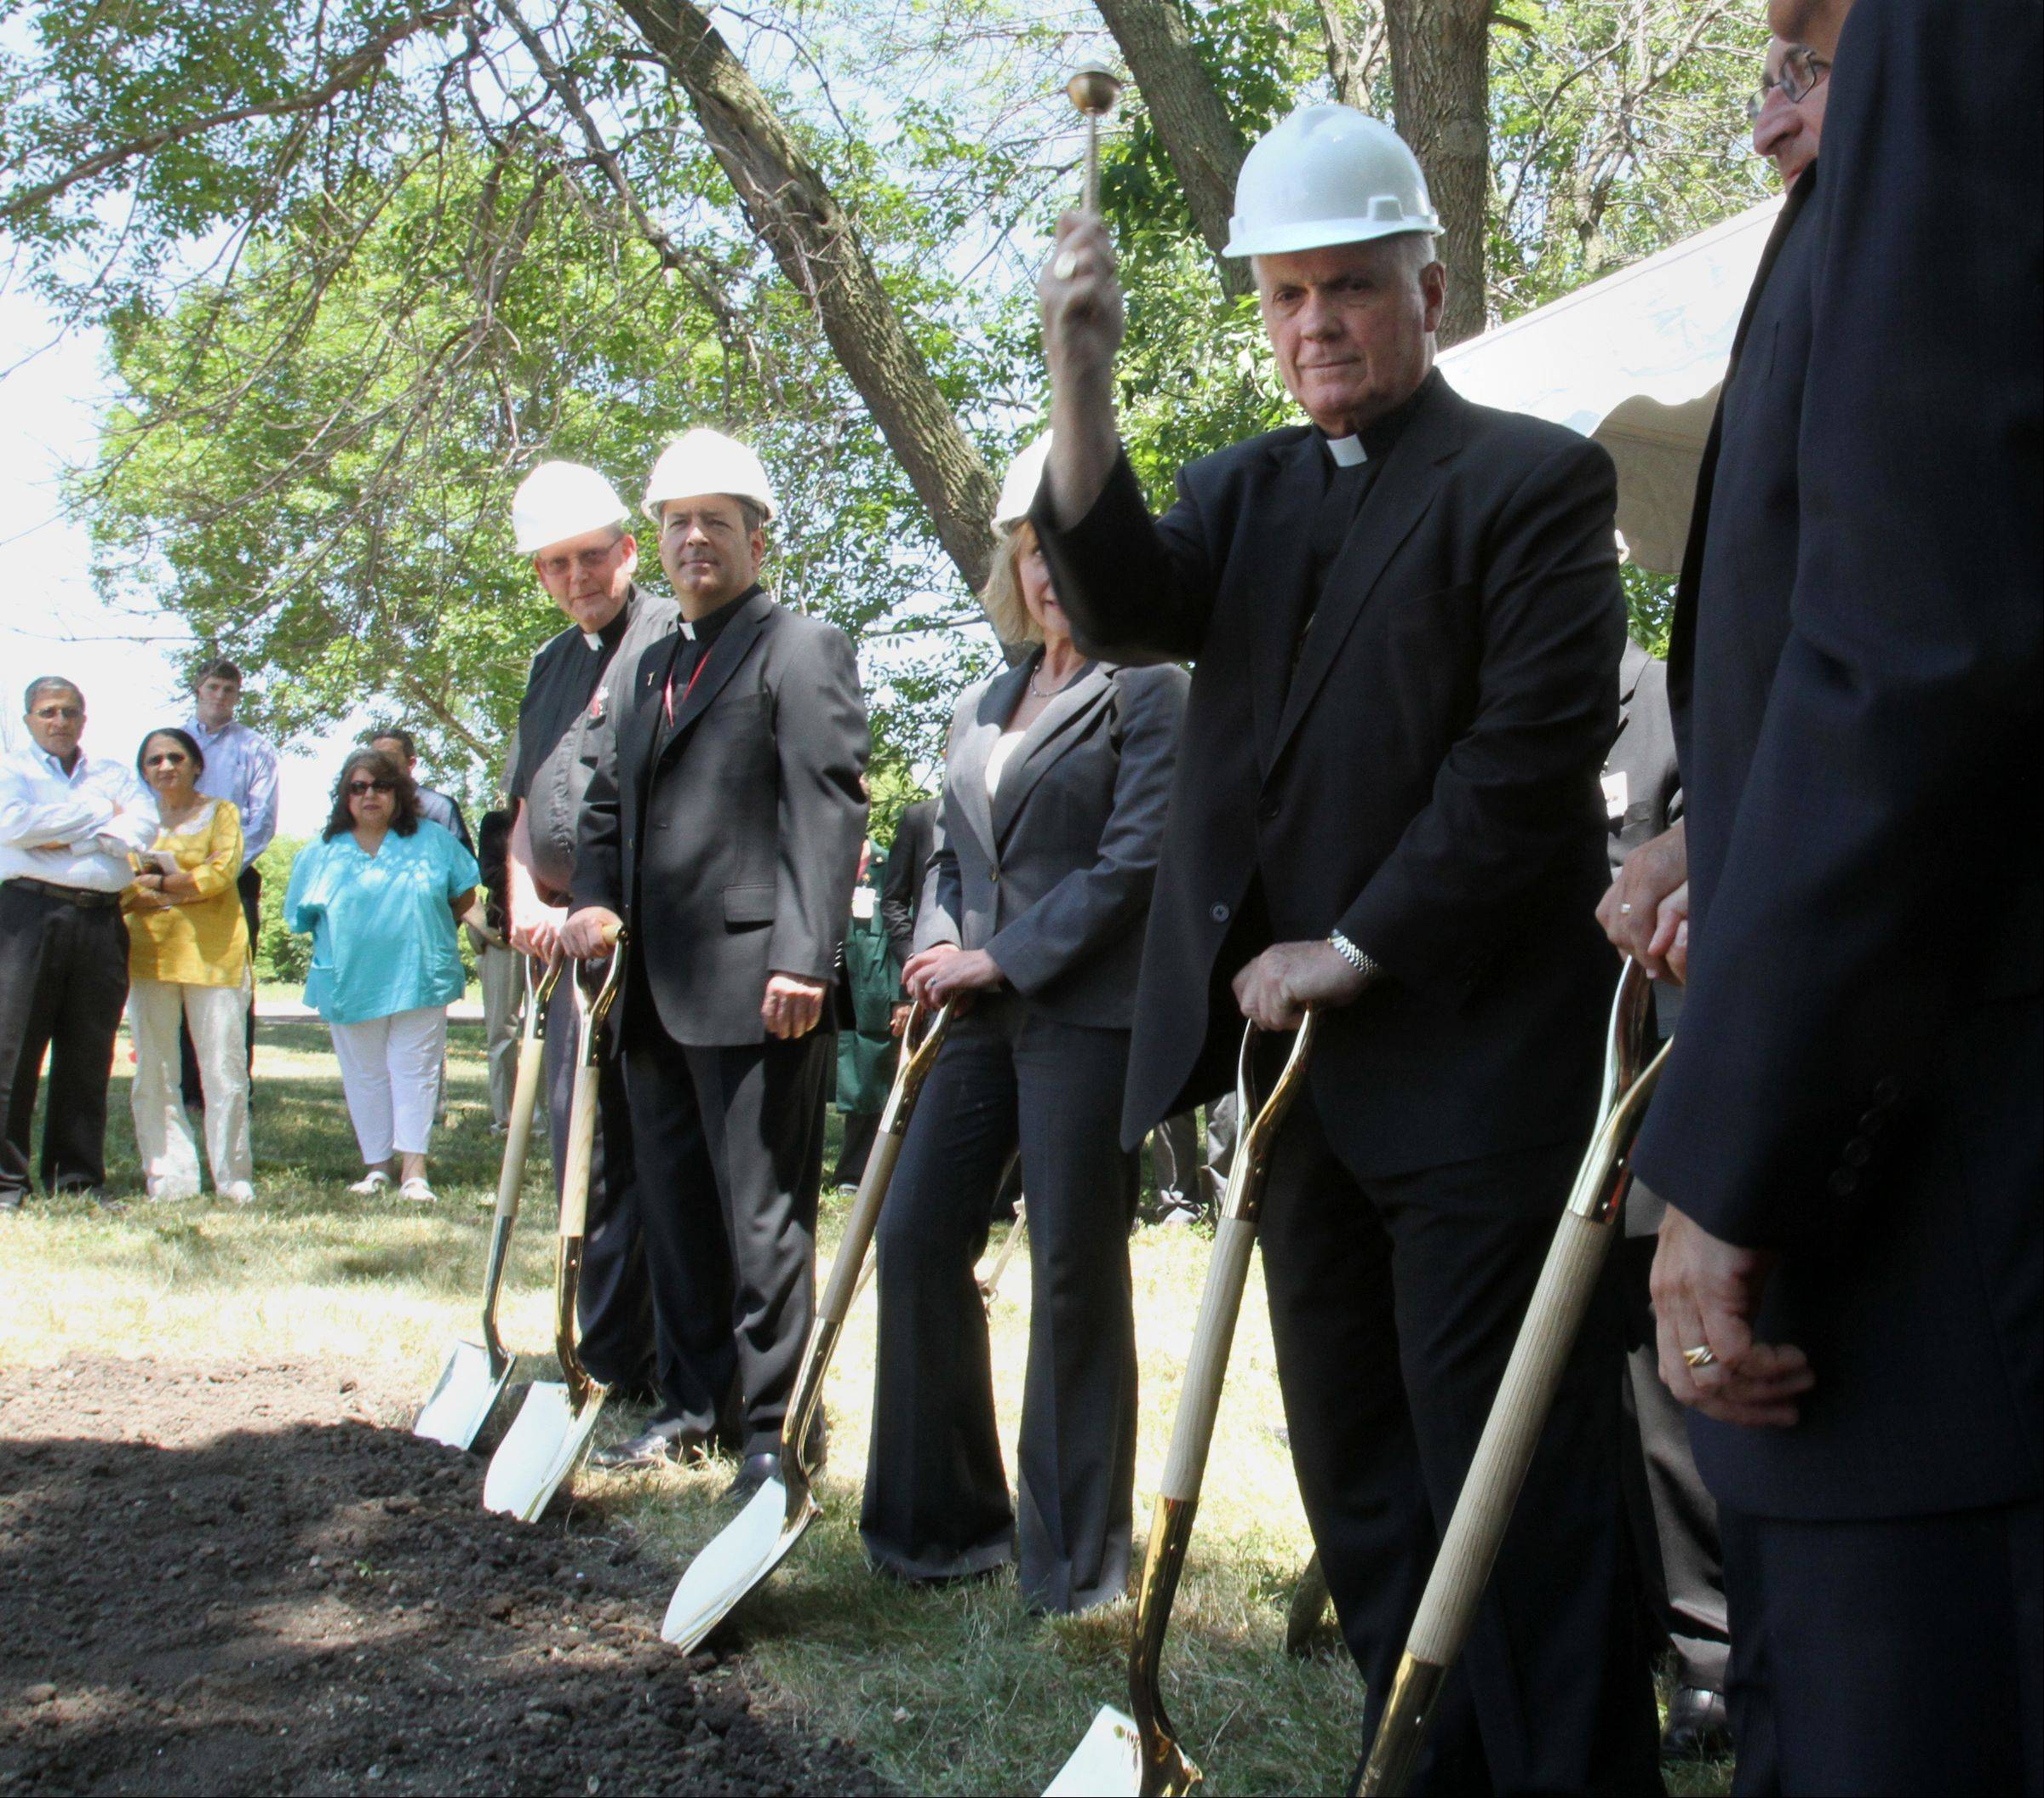 The Most Rev. George Rassas, auxiliary bishop of Chicago, places holy water on the ground at Alexian Brothers Health System's groundbreaking for a $7.5 million free-standing hospice residence in Elk Grove Village on Tuesday.